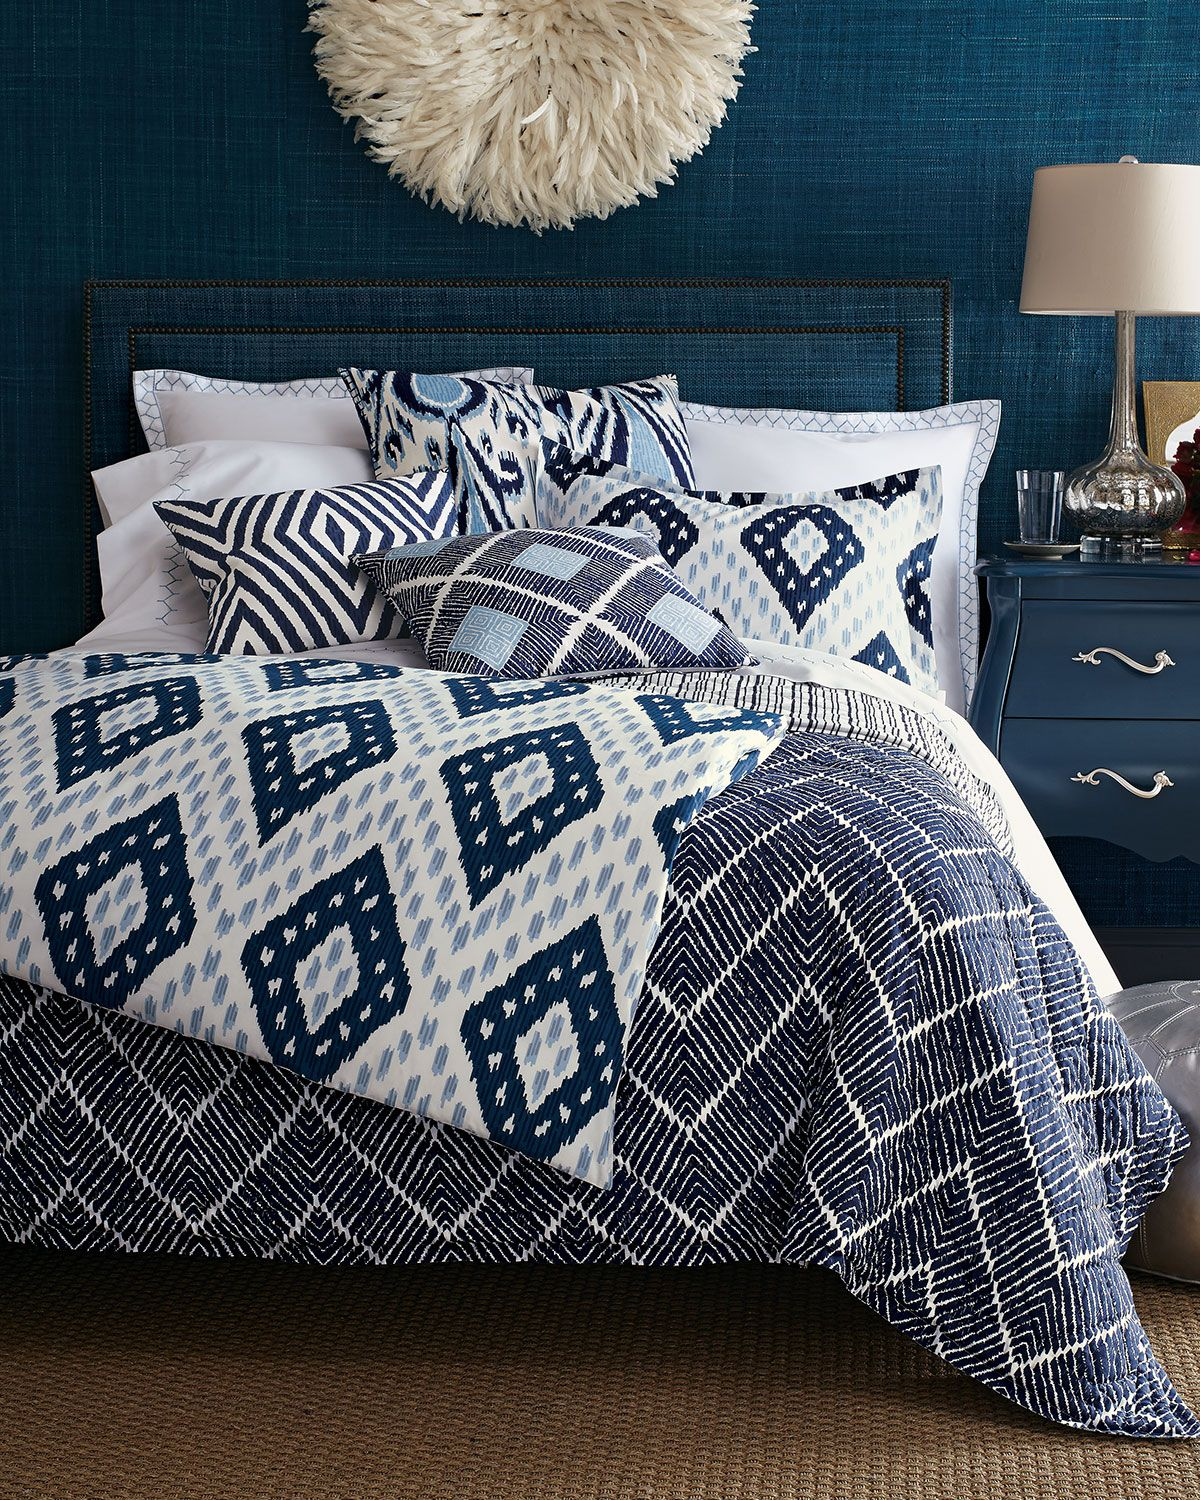 I Love These Textured Navy Walls In A John Robshaw Bedding Ad